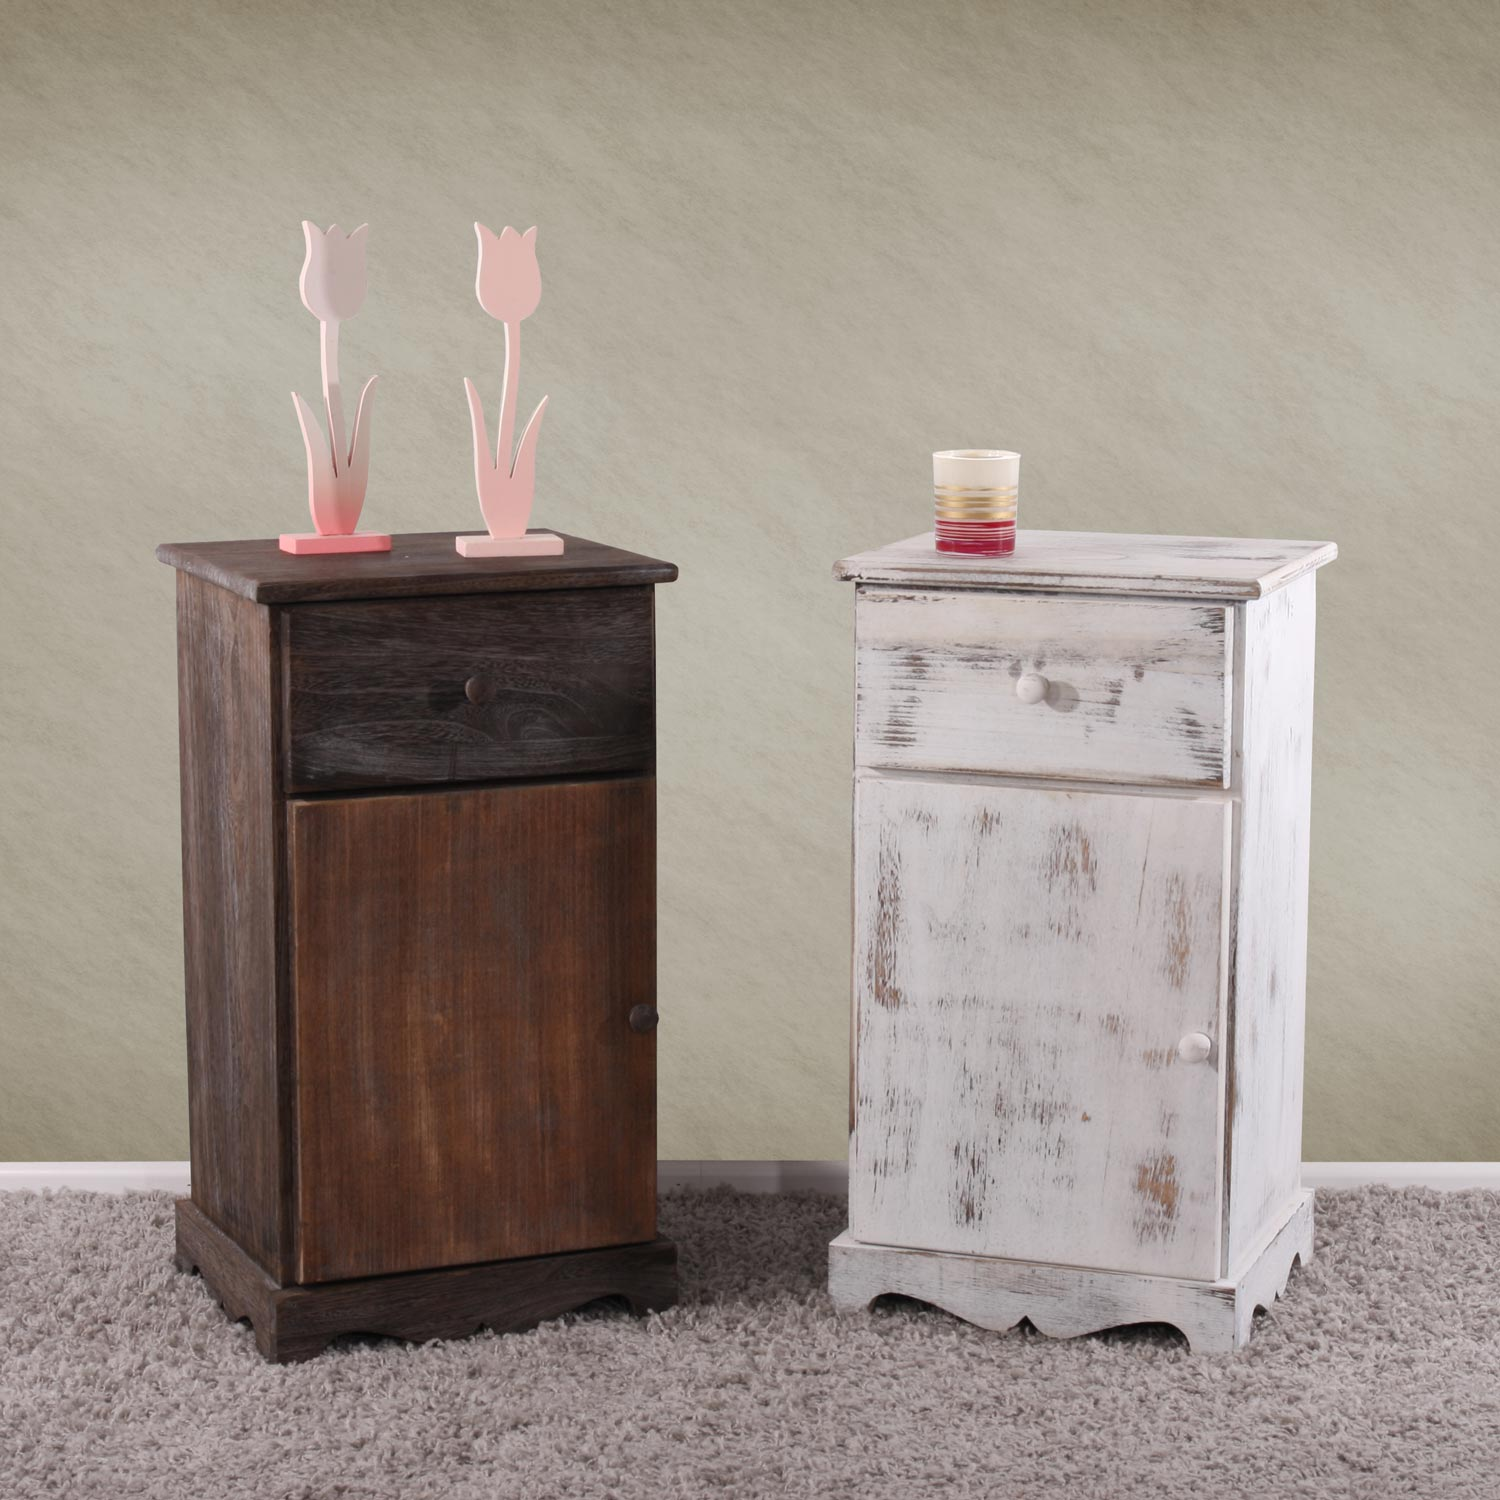 kommode beistelltisch nachttisch telefontisch 63x35x29cm shabby look vintage wei. Black Bedroom Furniture Sets. Home Design Ideas